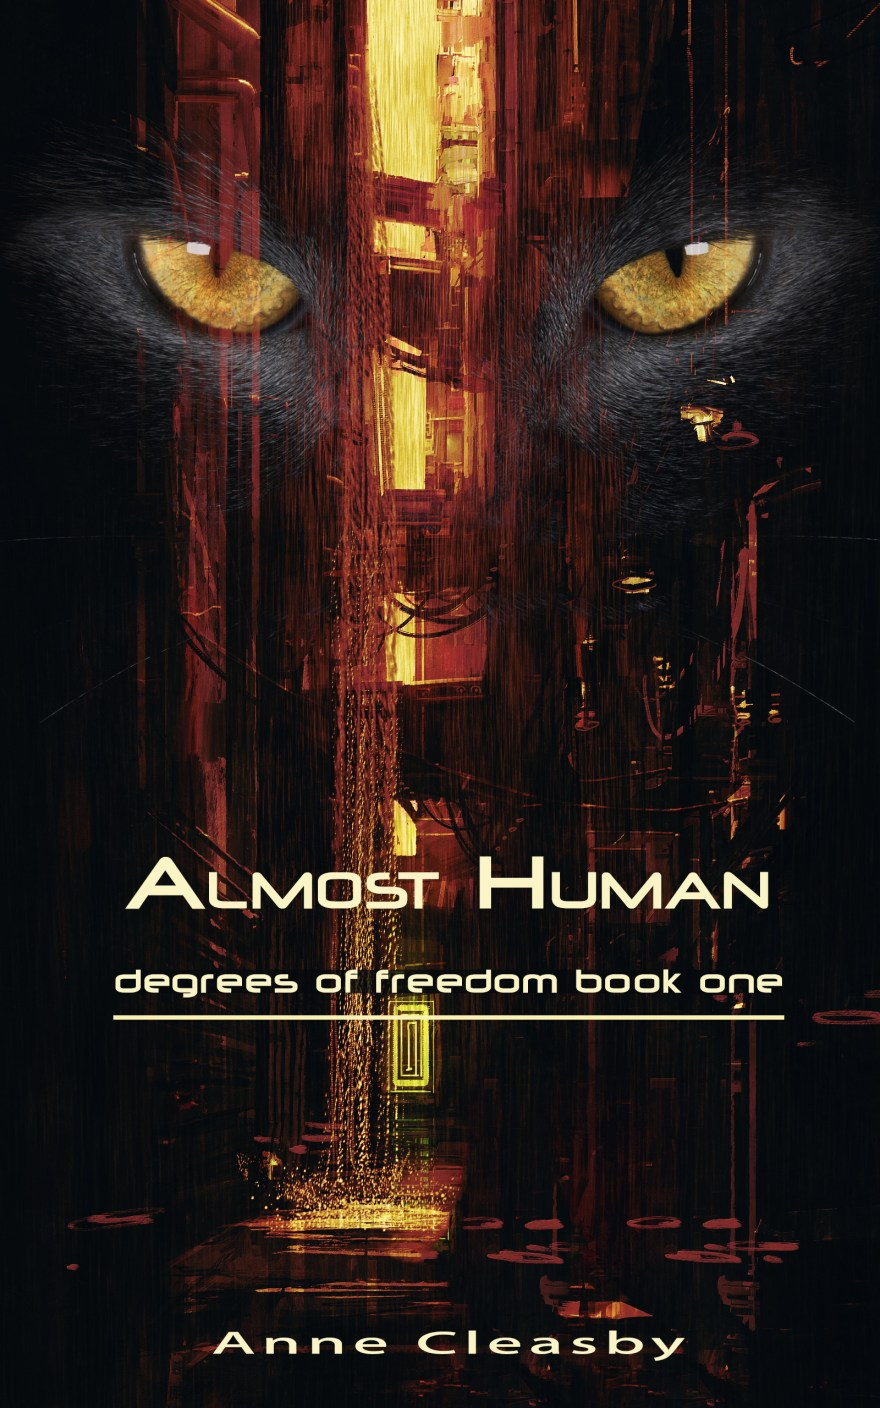 2. Almost human kindle by Anne Cleasby